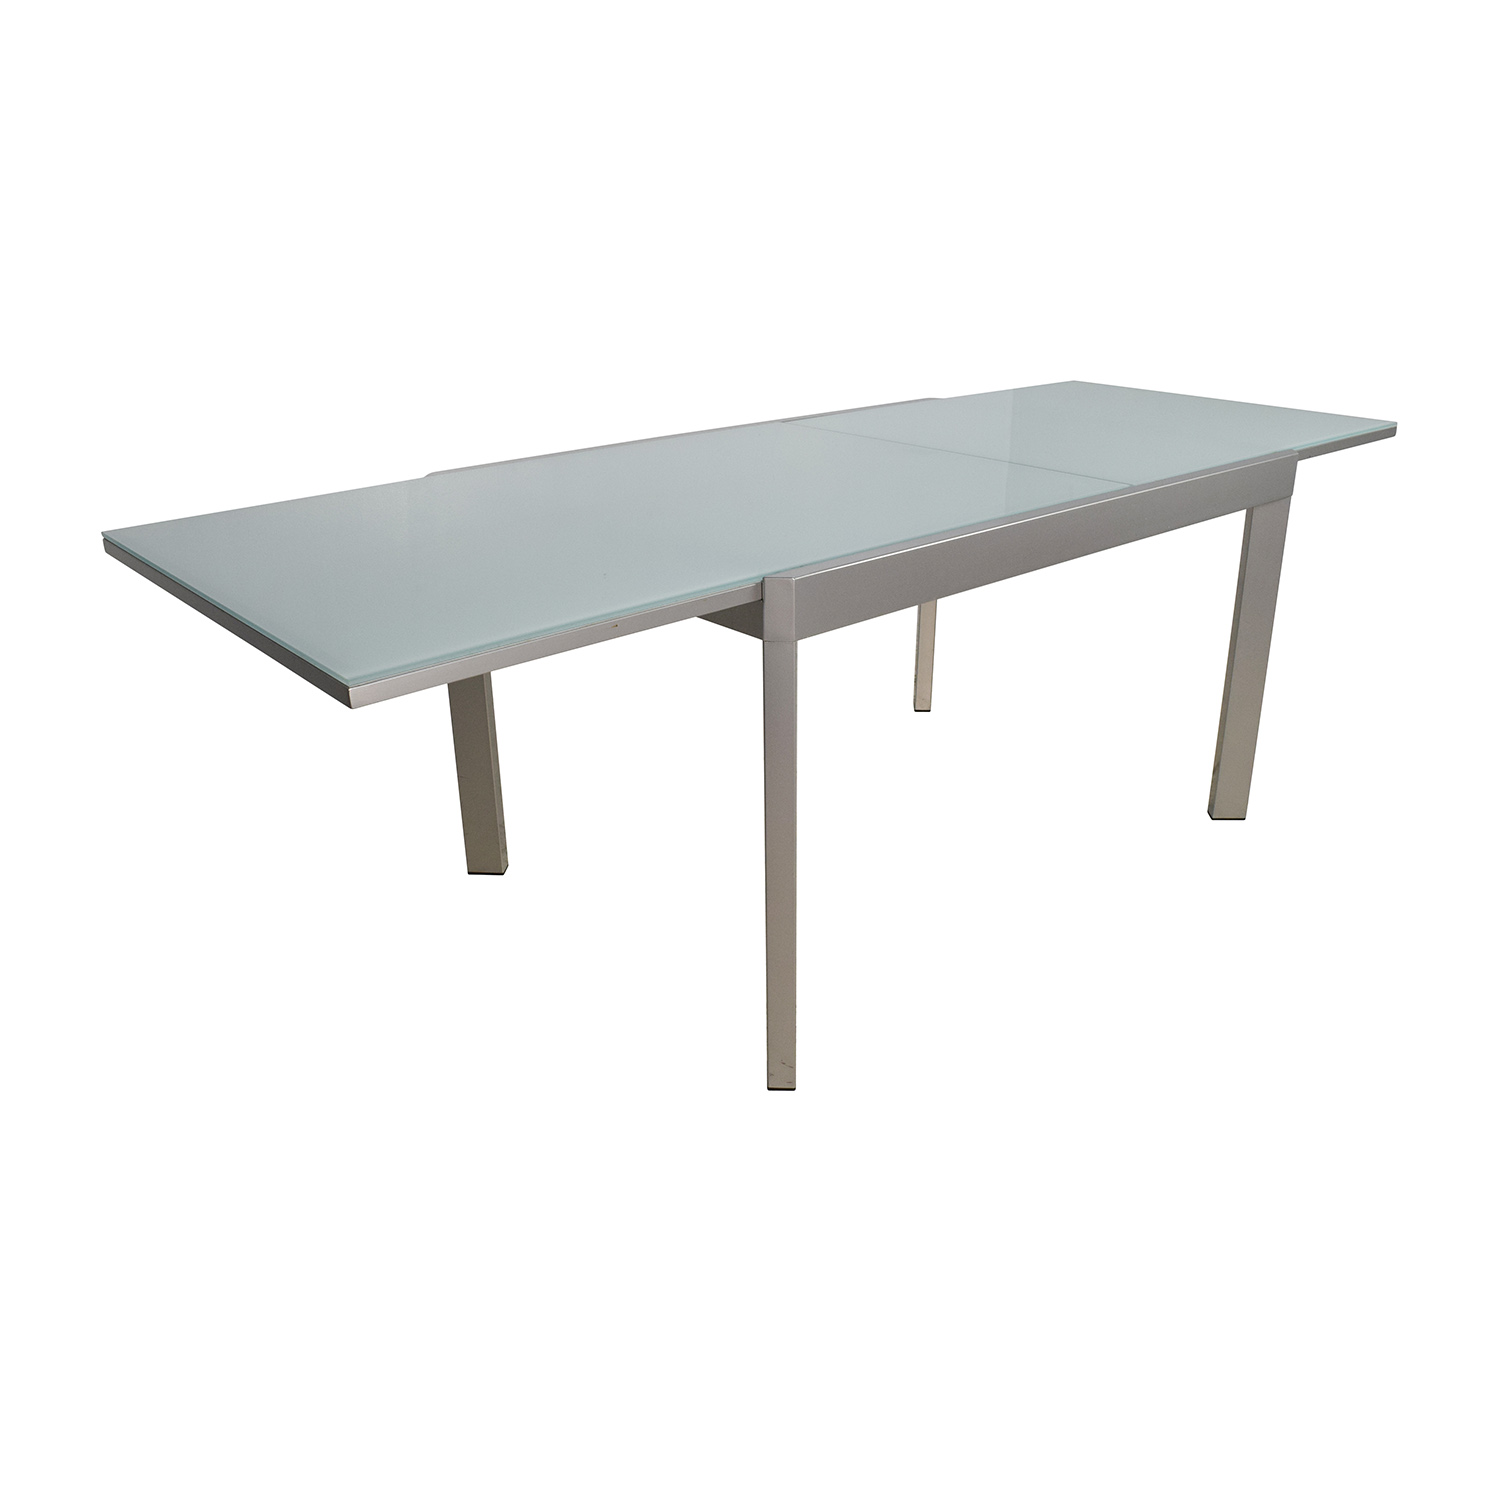 Buy extendable dining table 86 calligaris calligaris for Extendable dining table